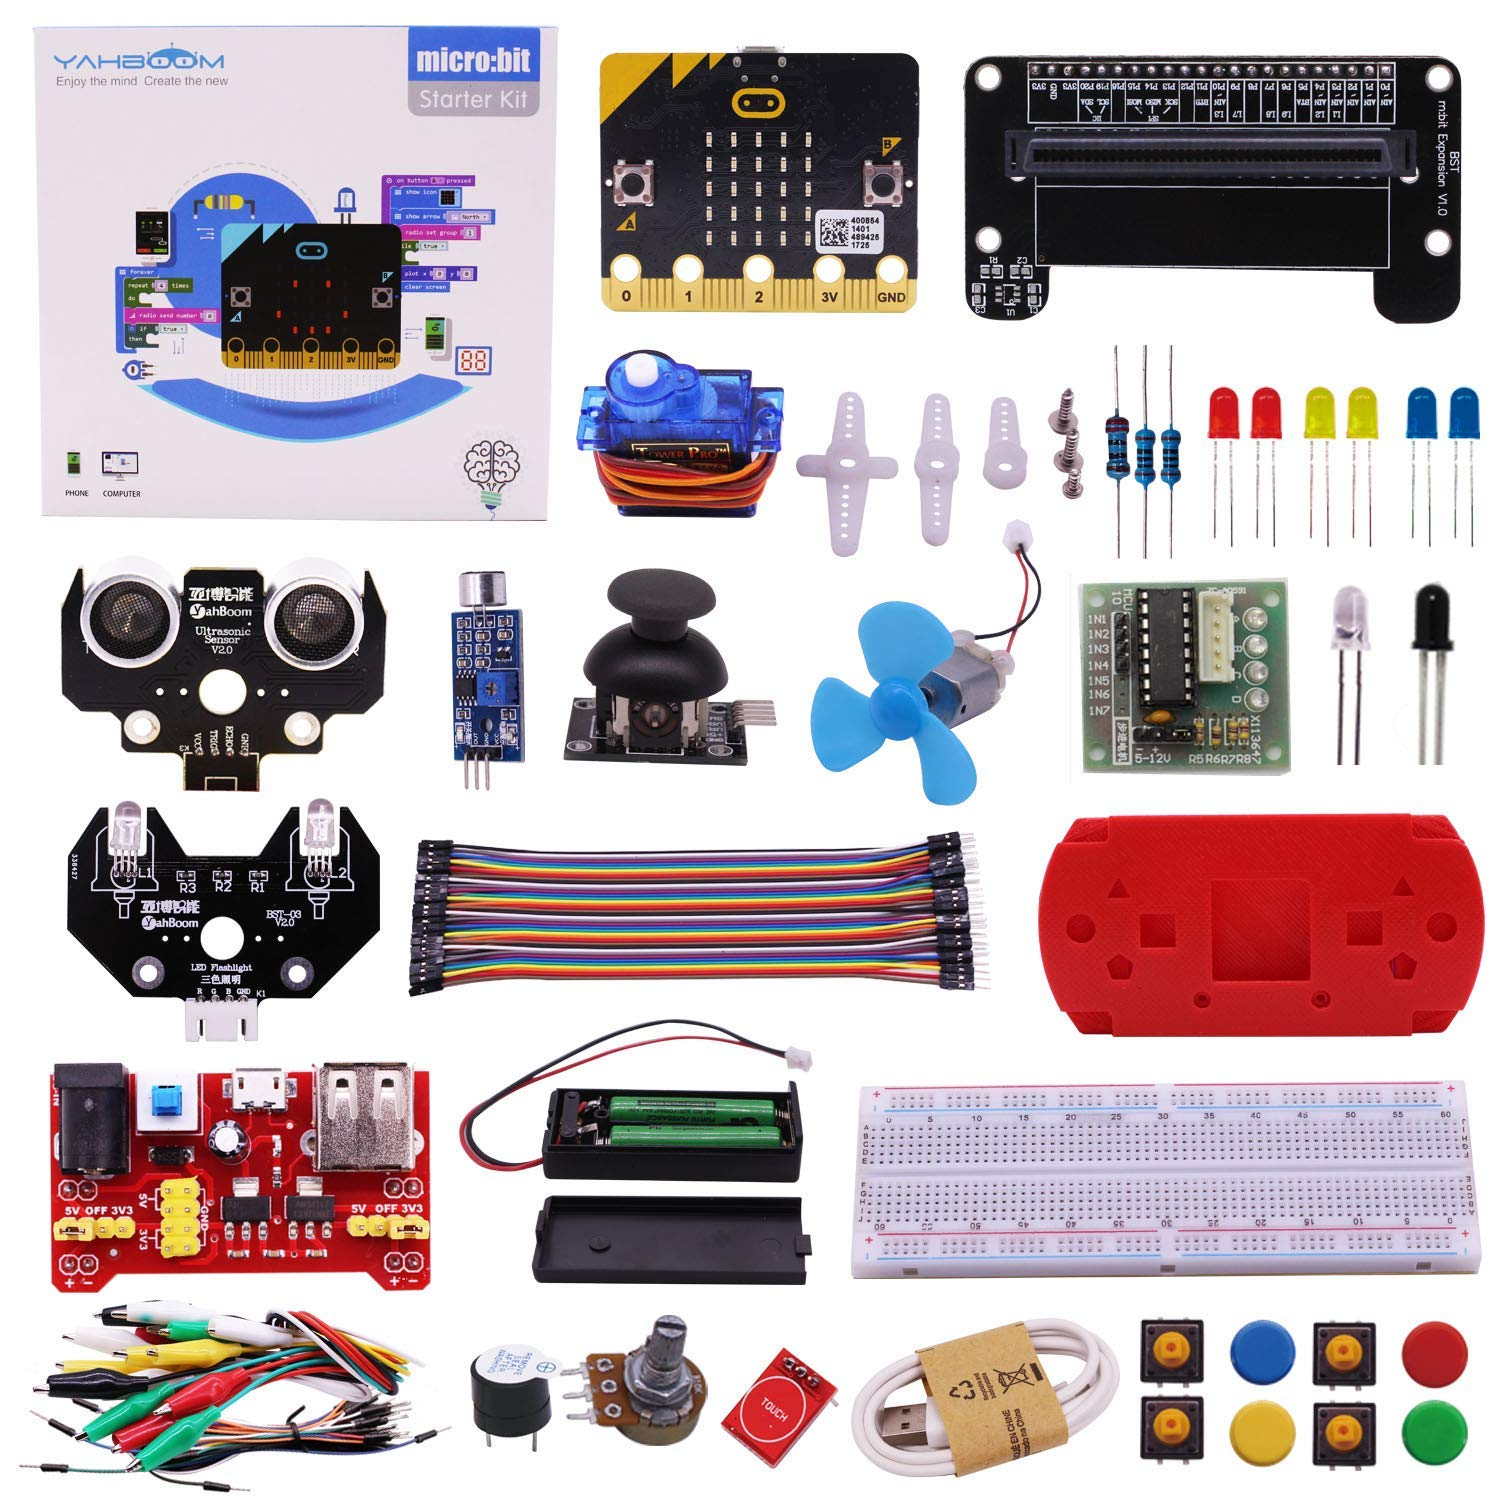 Yahboom Micro:bit Kit Starter Learning Kit with BBC Micro bit Board Graphical Programmable STEM Toys for Kids with Guidance Manual